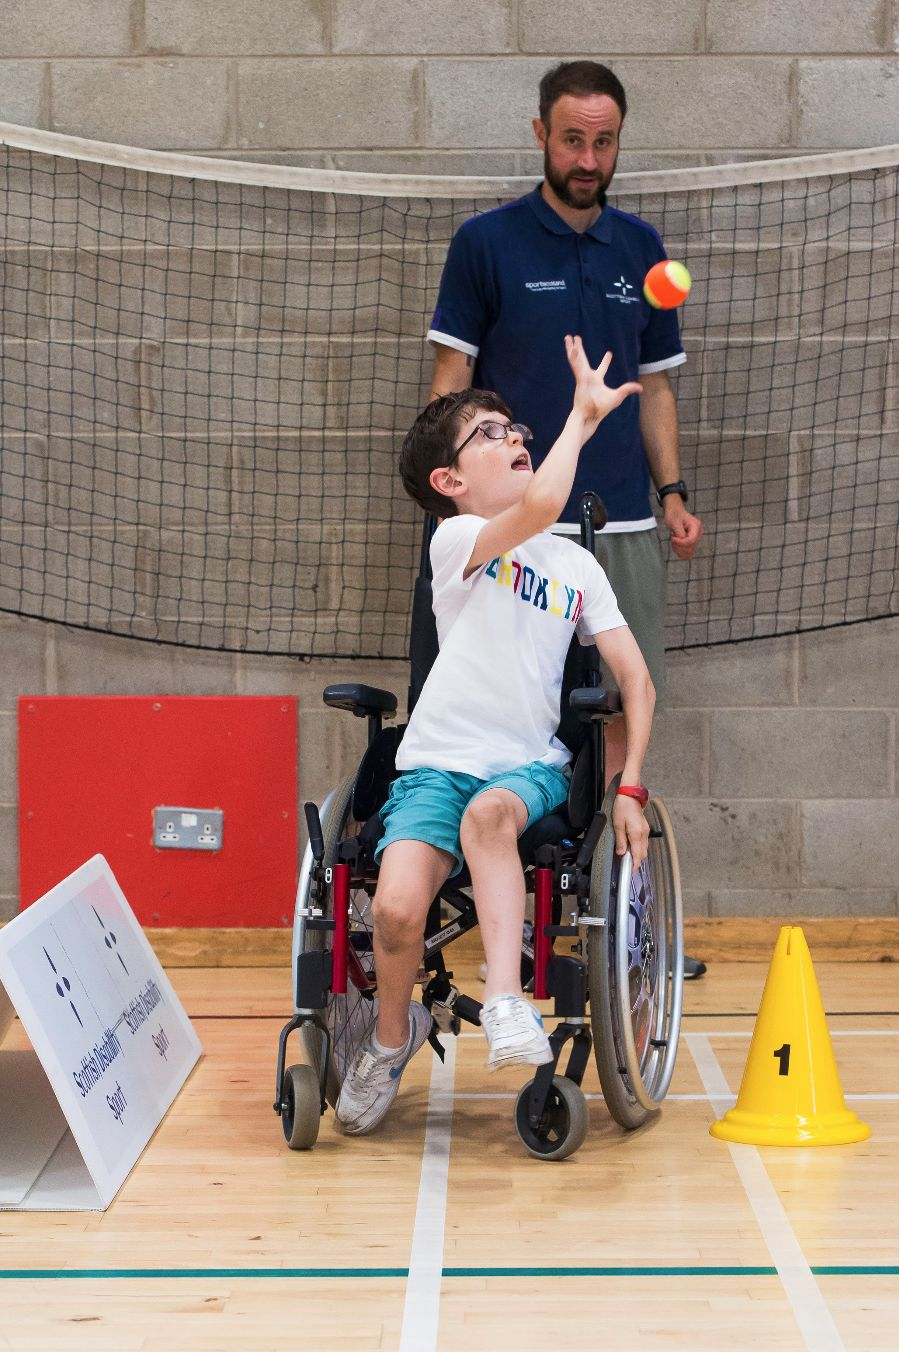 Young disabled athlete